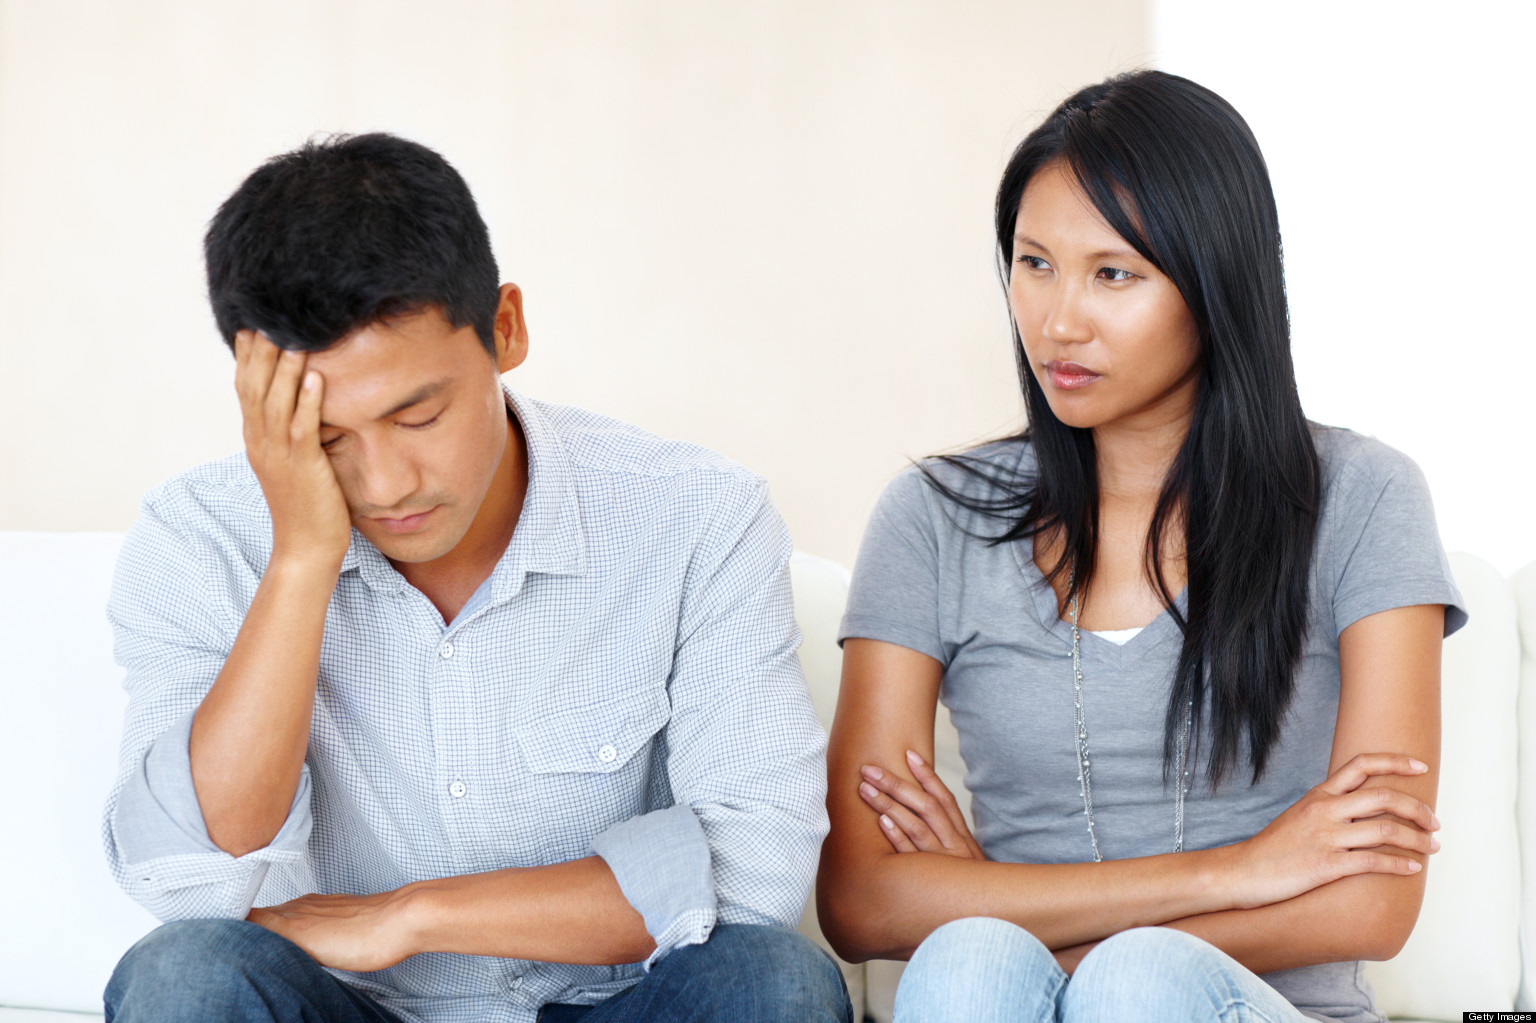 10 Most Common Reasons for Divorce